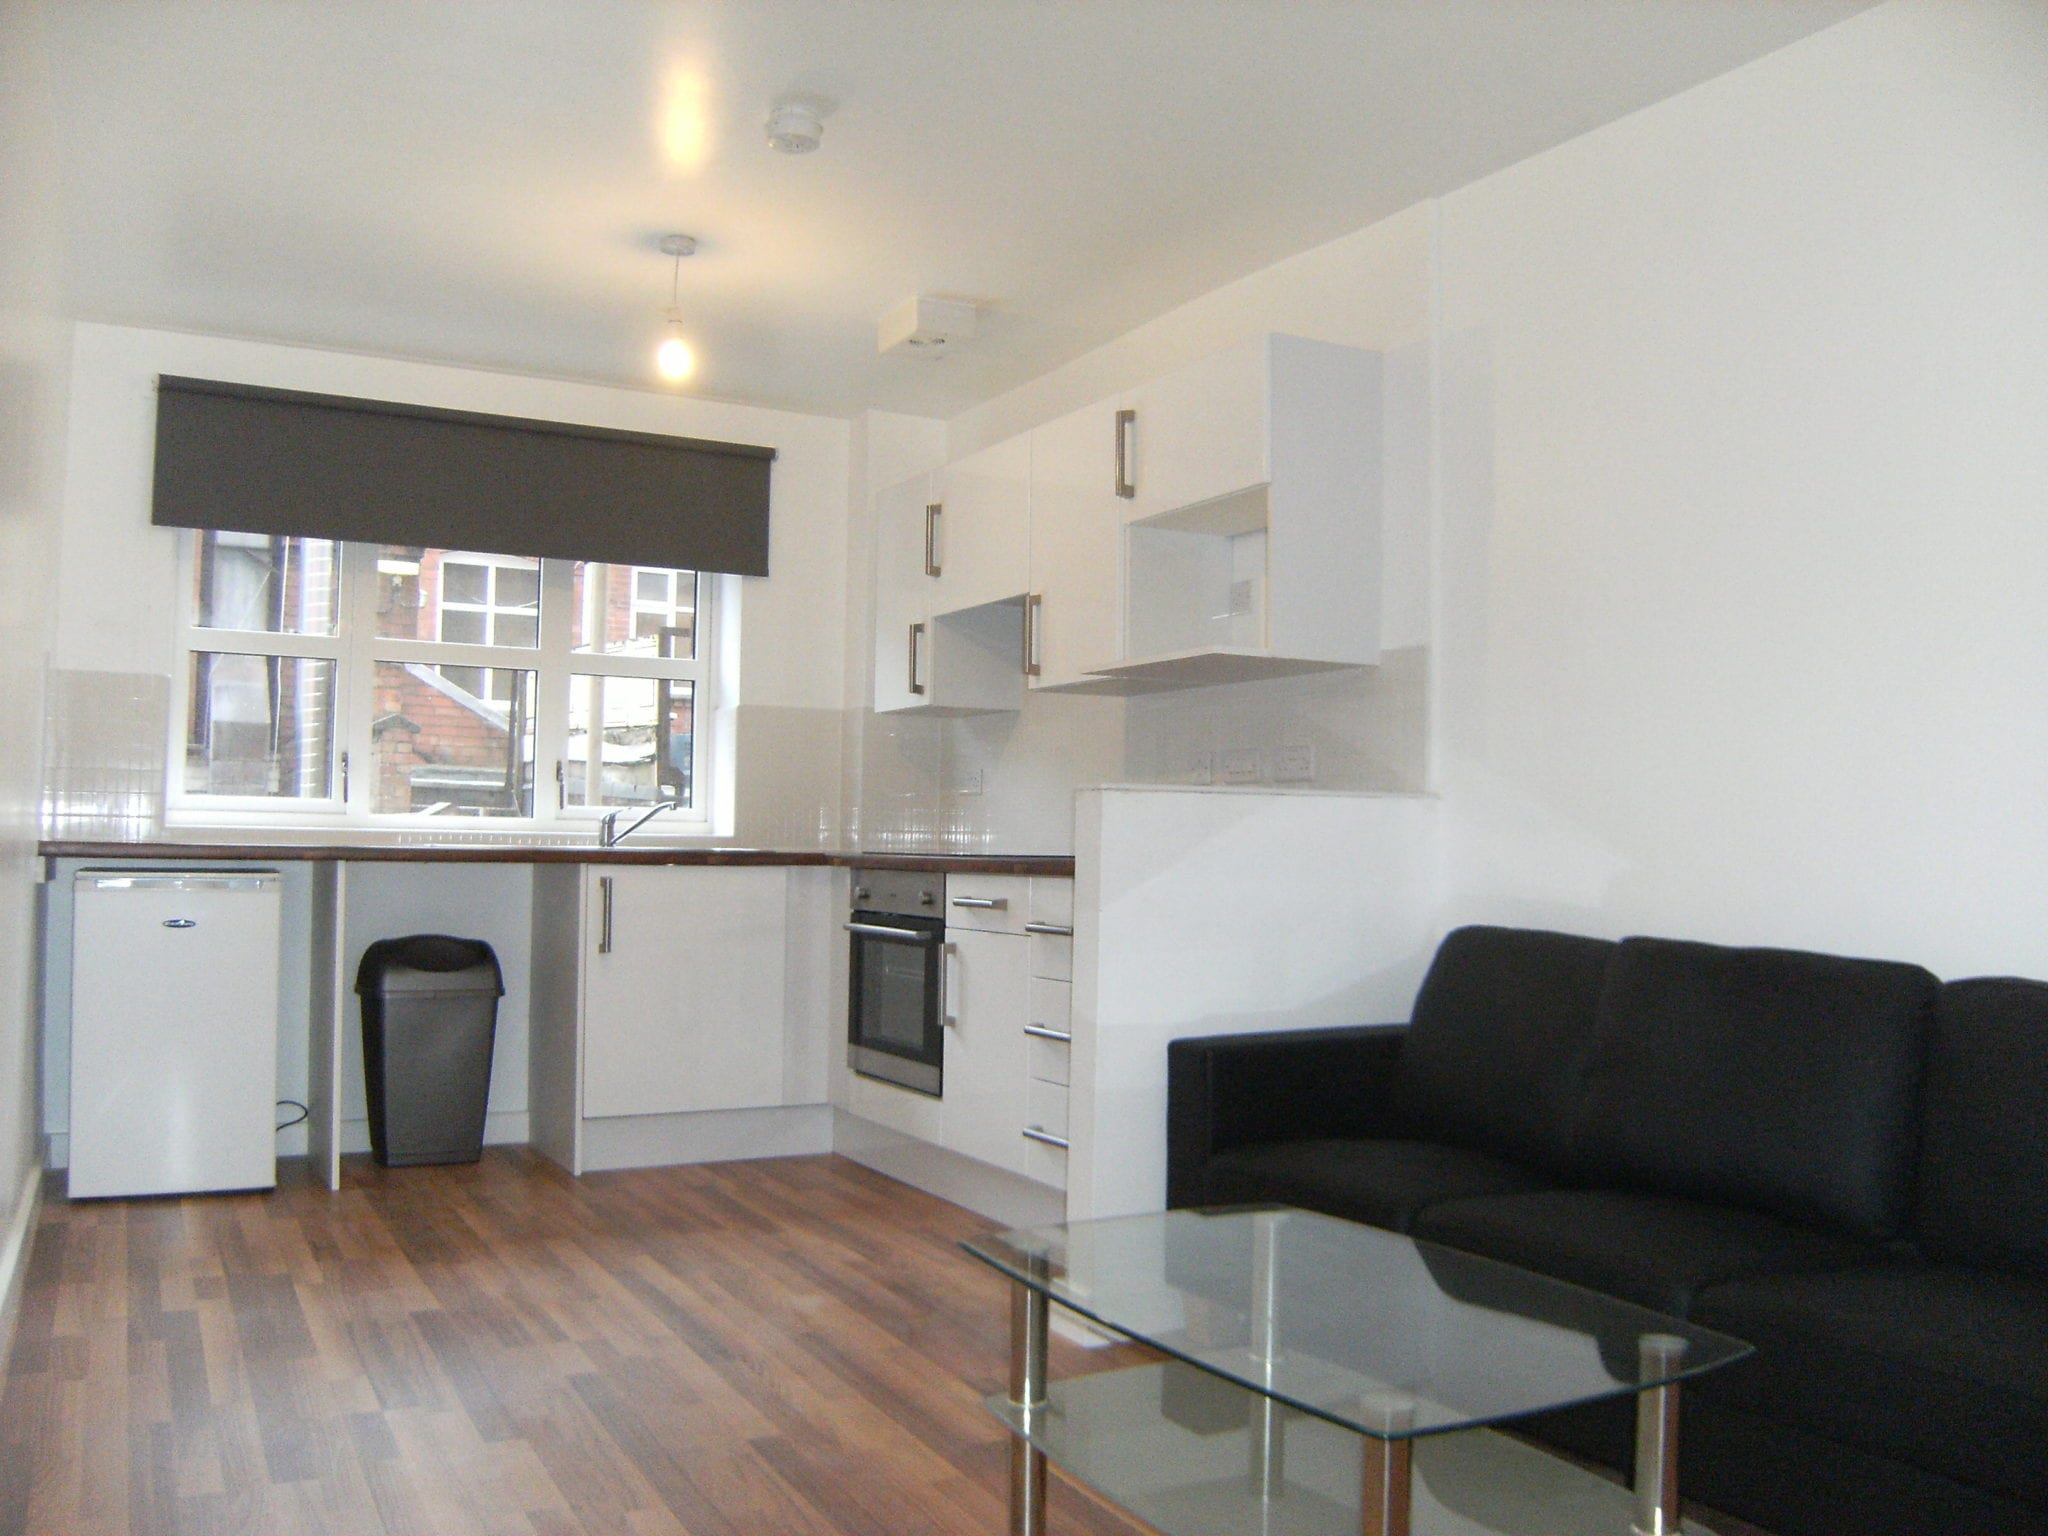 Clyde court leicester university accommodation student accommodation leicester westmanor - University of london accommodation office ...